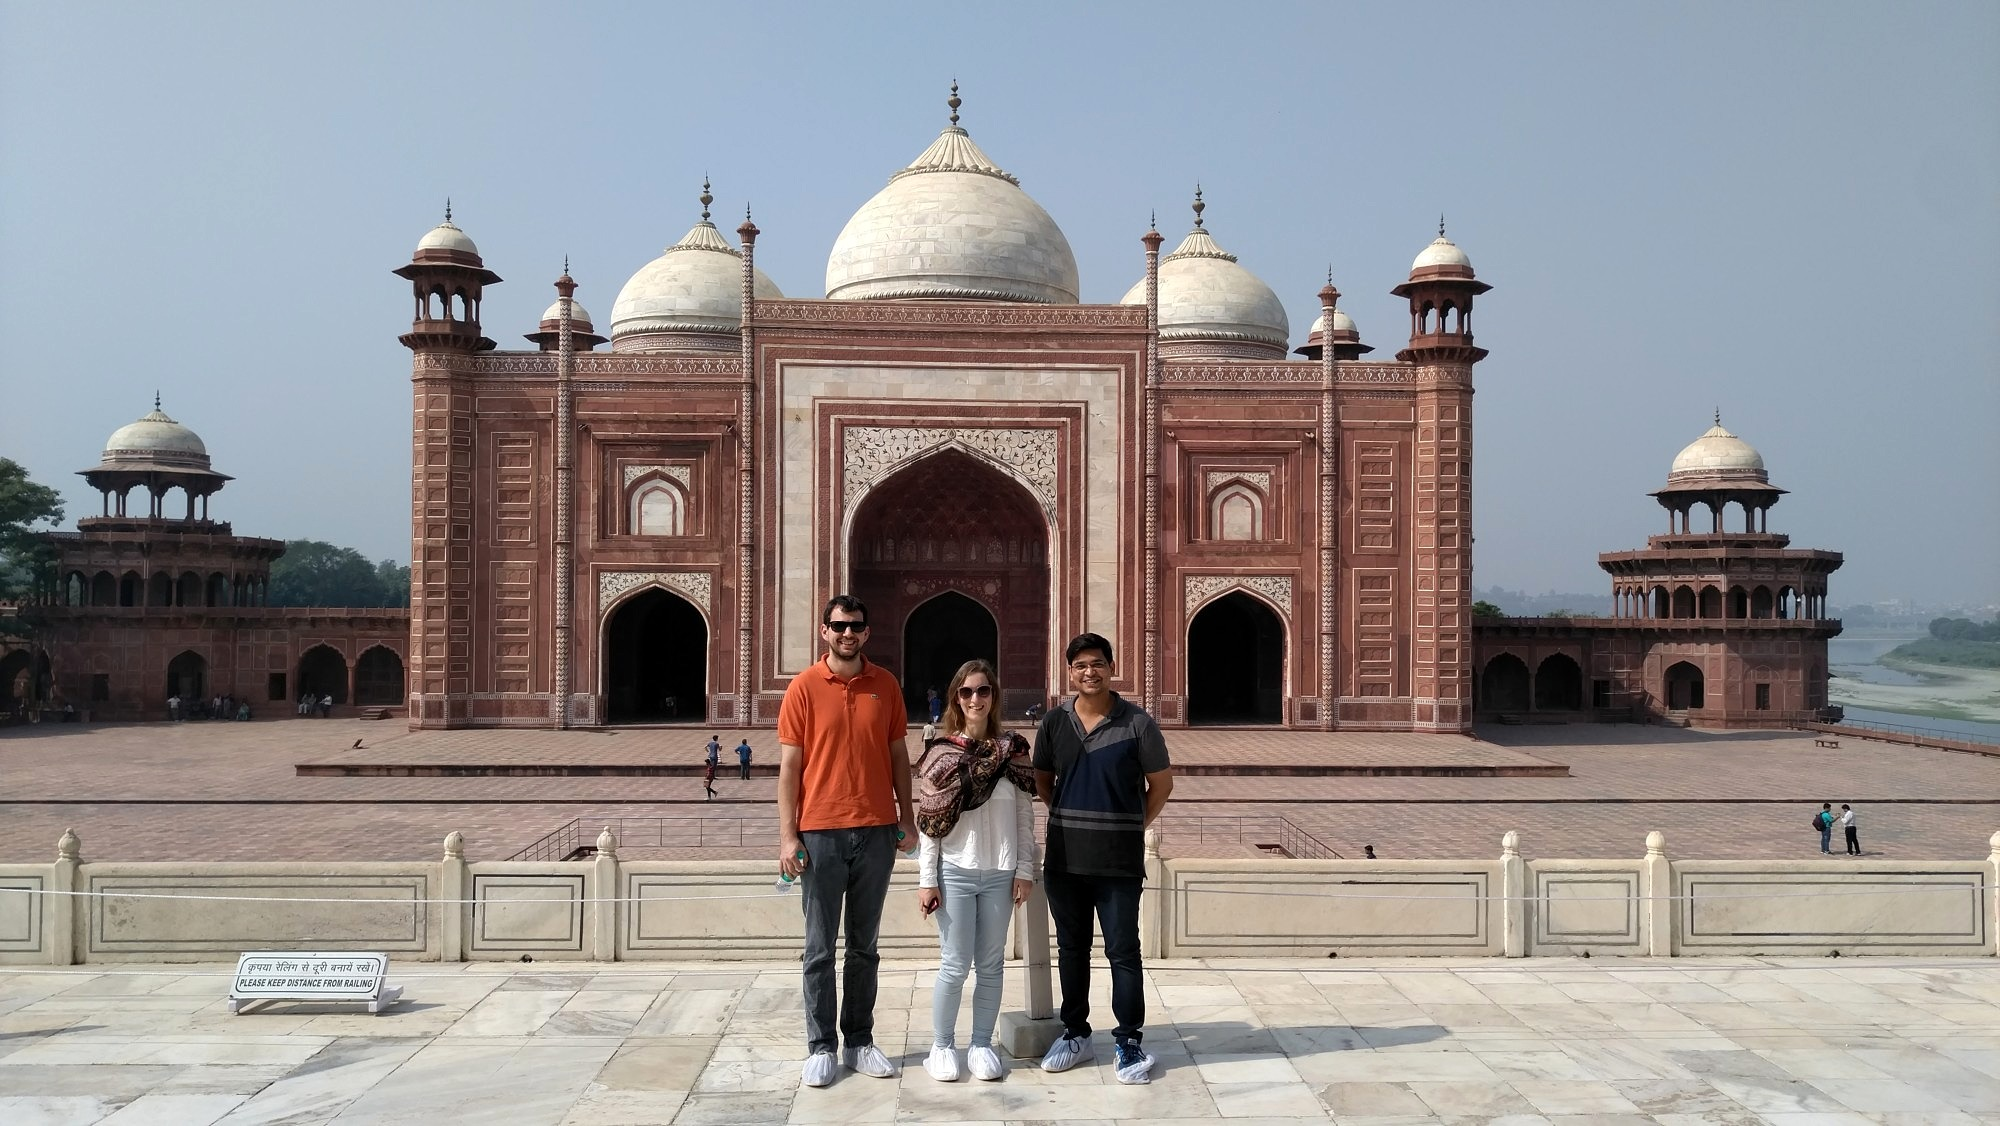 Group photo of three researchers from the technical faculties at Friedrich-Alexander-Universität Erlangen-Nürnberg and the Indian Institute of Technology Delhi visiting Taj Mahal.